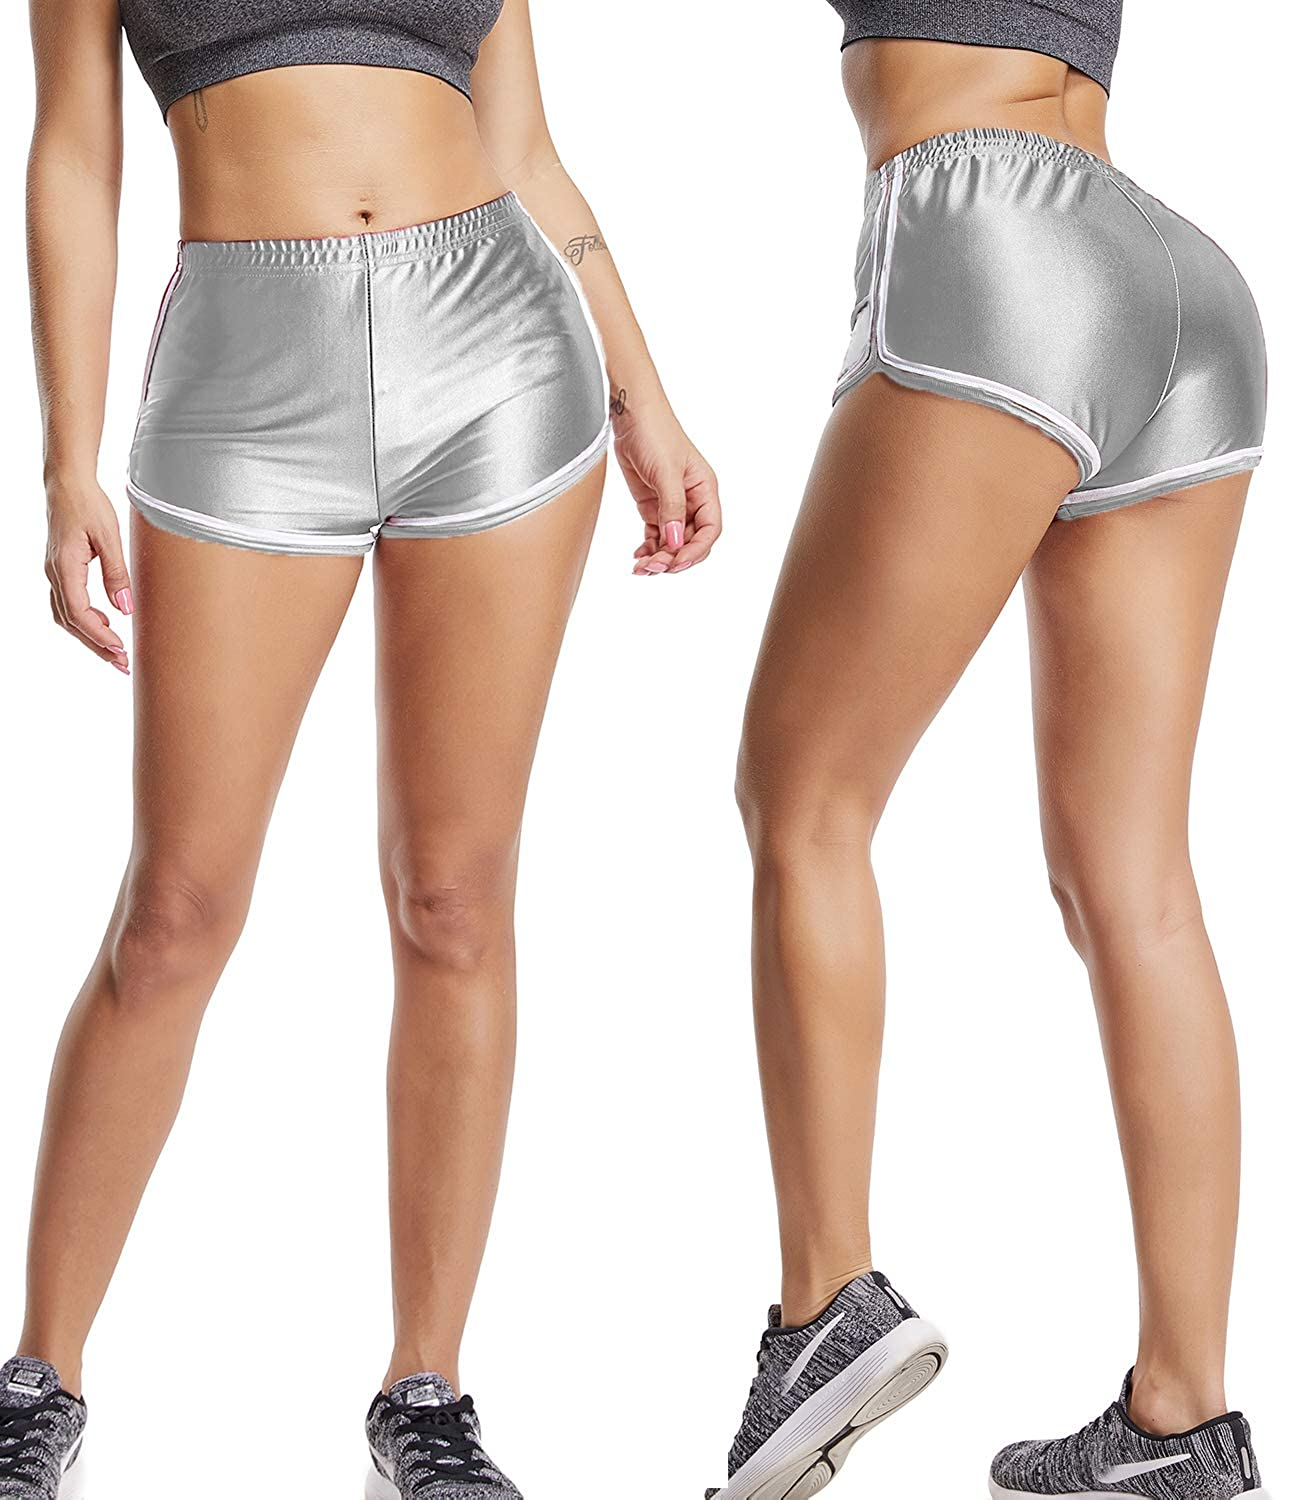 KIWI RATA Womens High Waisted Shorts Sport Fitness Gym Ruched Butt Lifting Workout Running Yoga Hot Pants